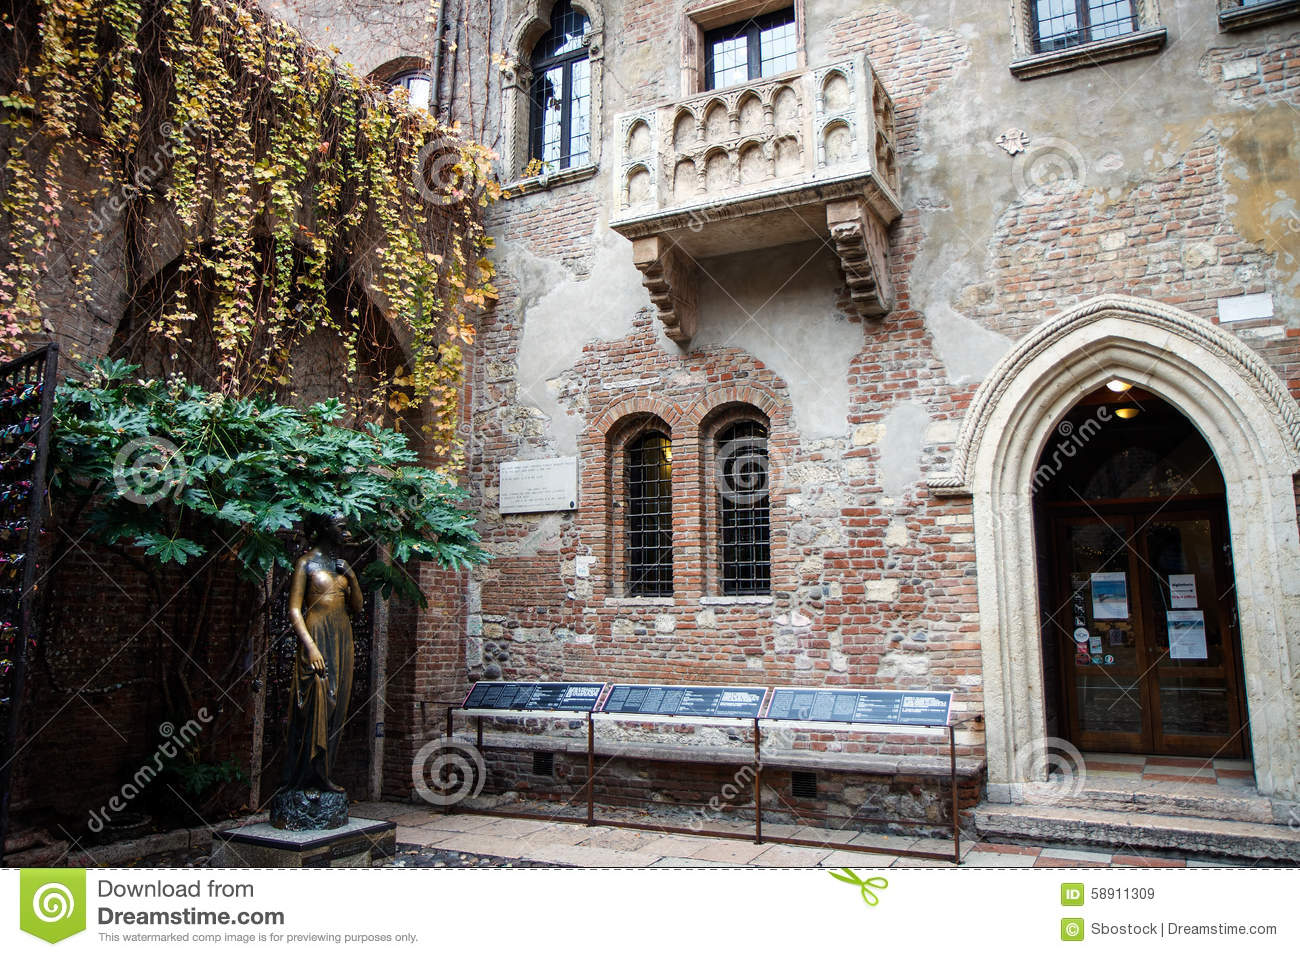 The famous balcony of juliet capulet home in verona for Famous balcony